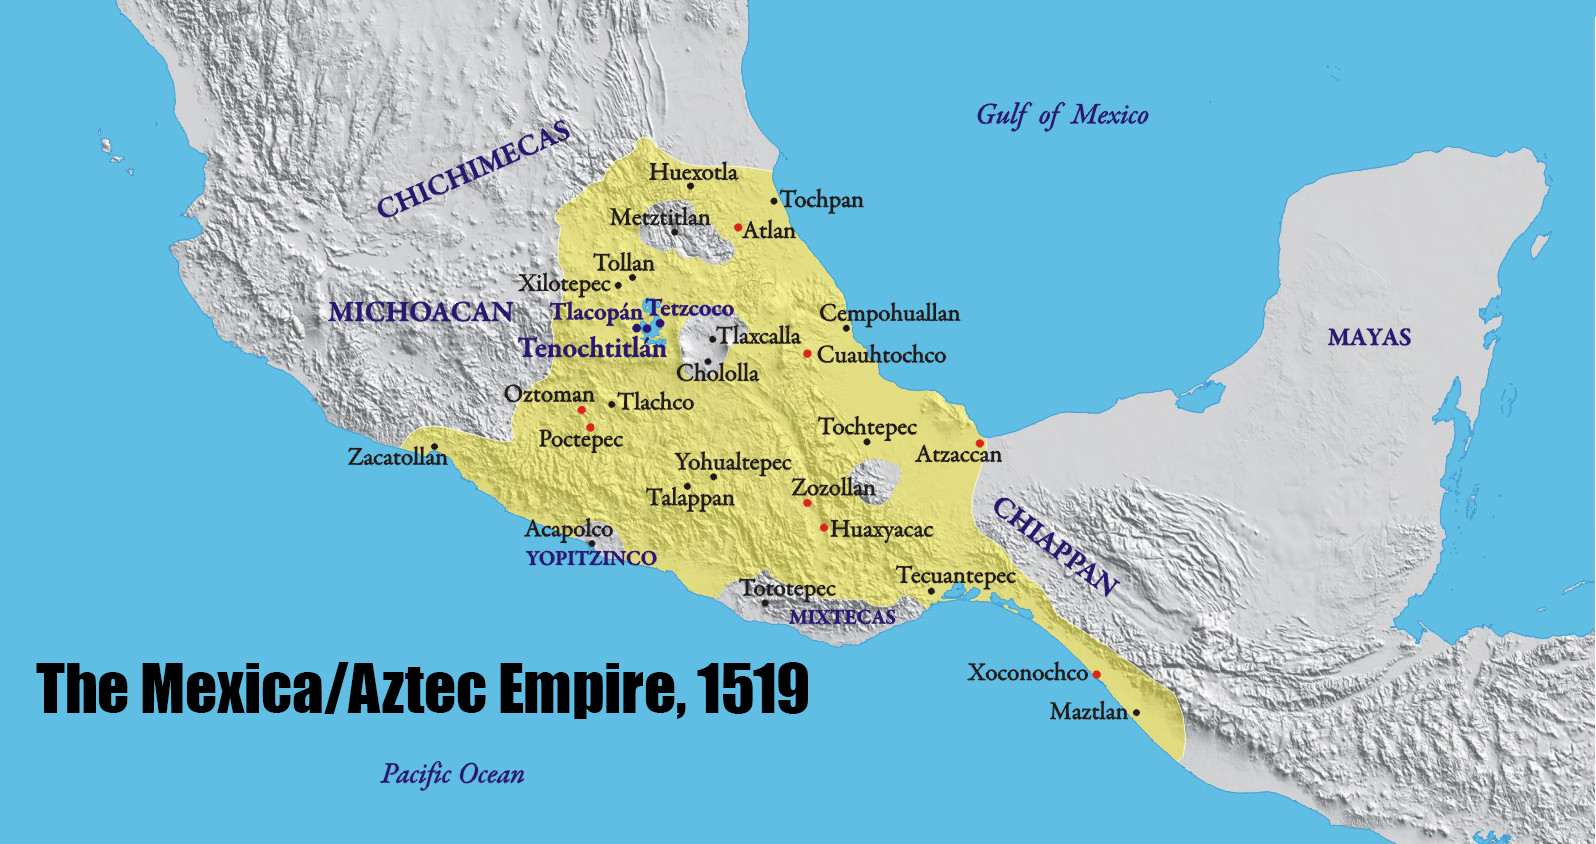 Aztec Empire Map map of the Aztec Empire in 1519 CE 57962176 – open ended social  Aztec Empire Map